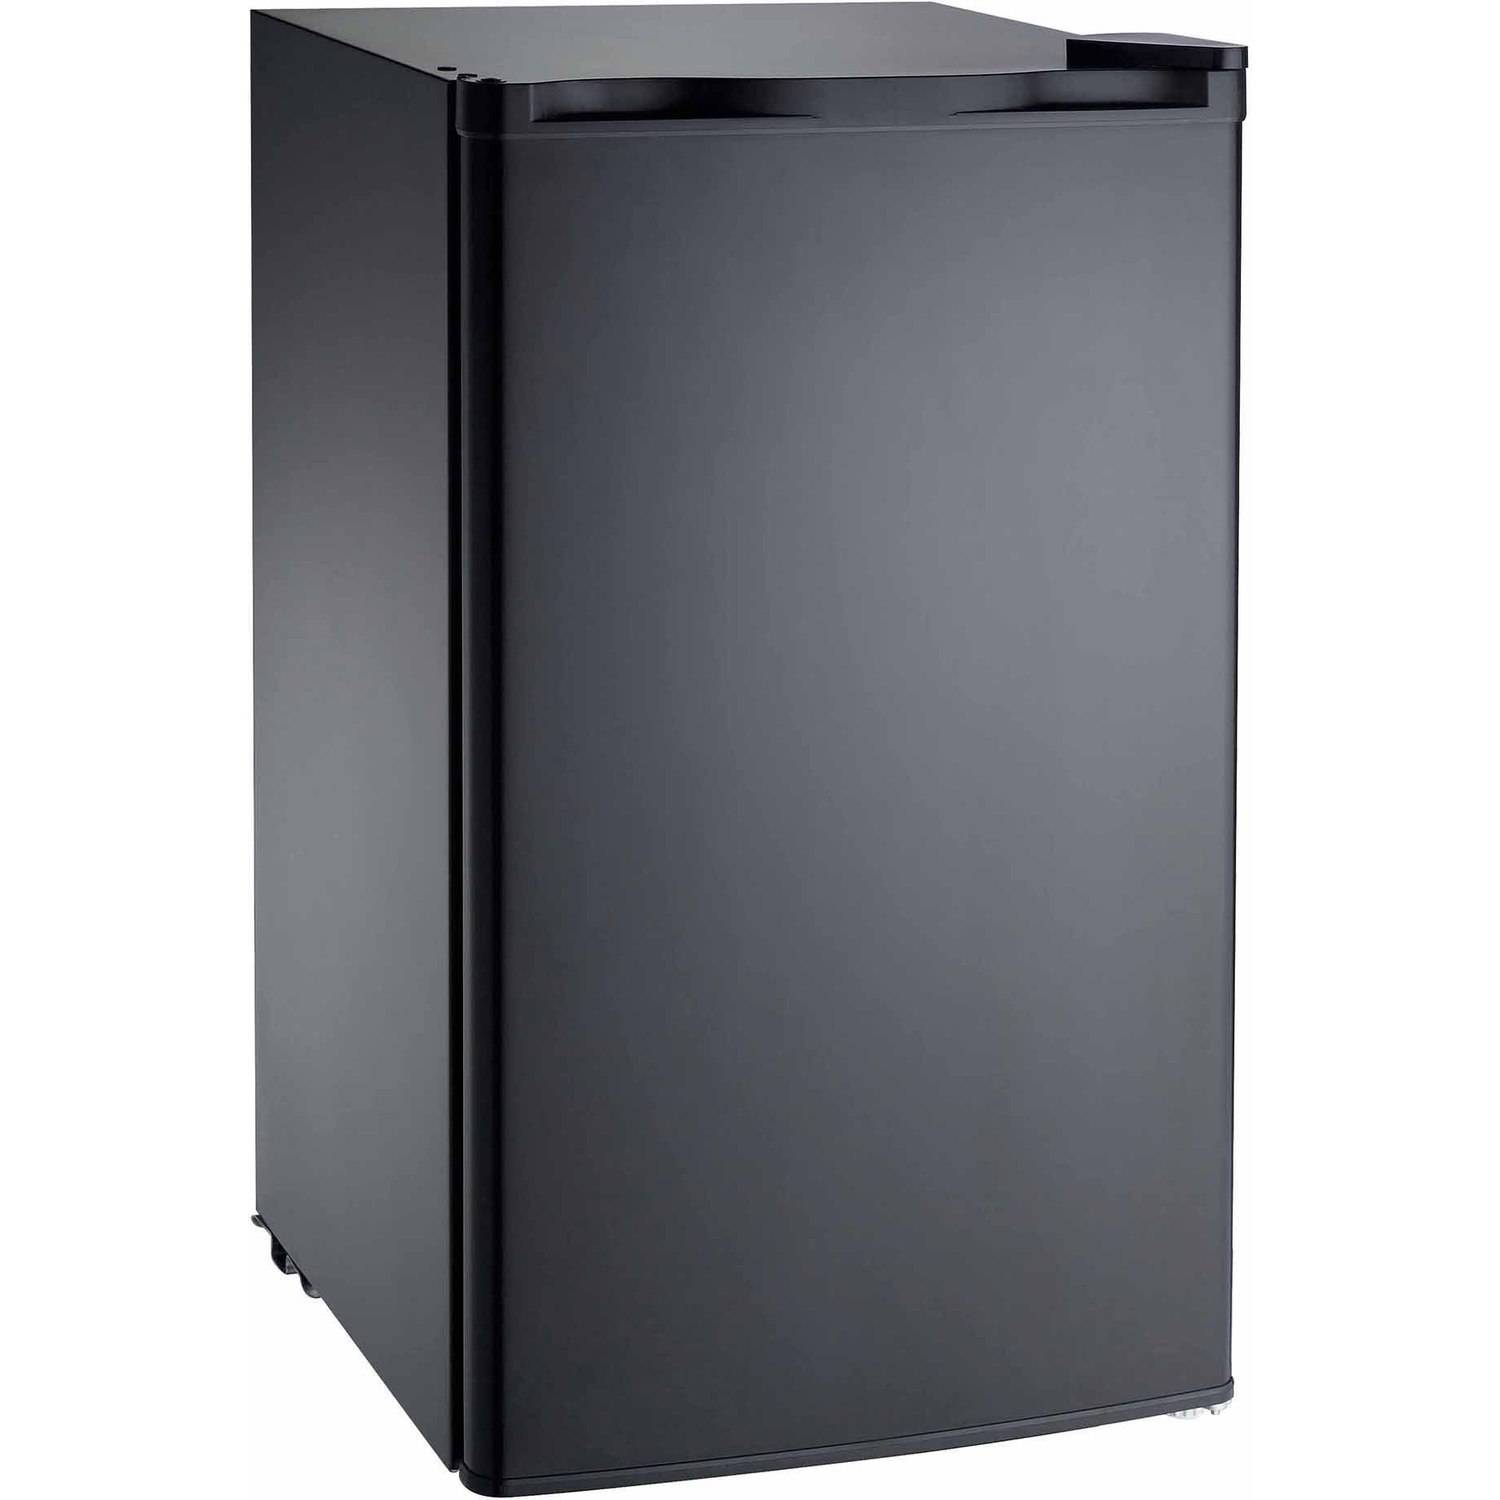 Igloo 3.2 cu ft Refrigerator, Black